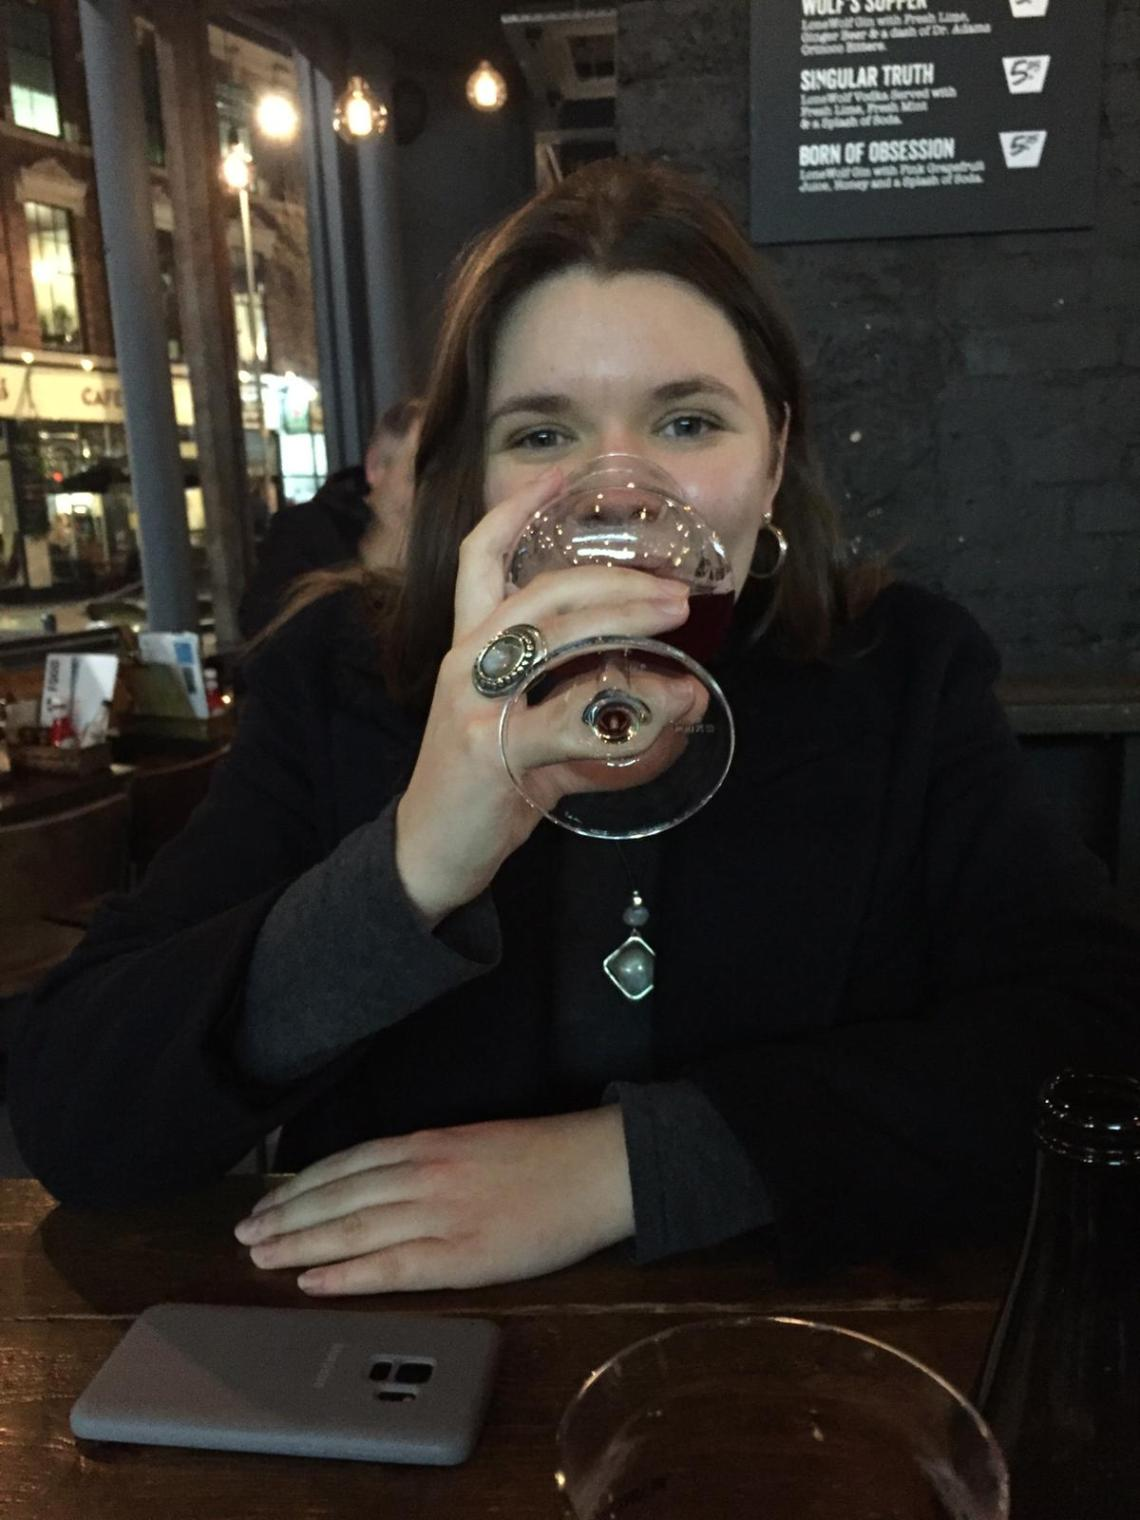 A young woman drinking a glass of beer at Brewdog Birmingham.